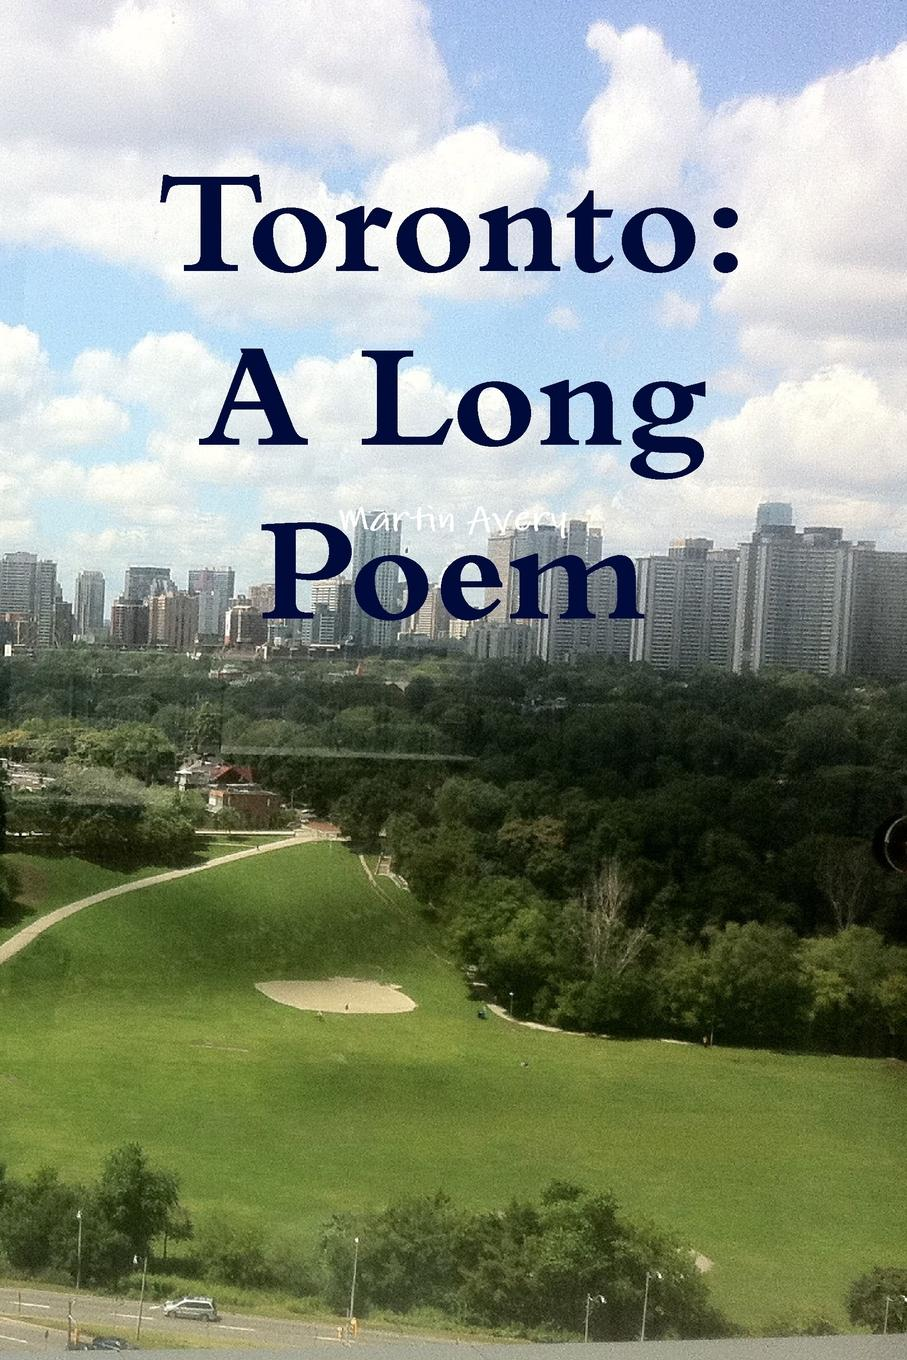 Martin Avery Toronto. A Long Poem why i am a five percenter